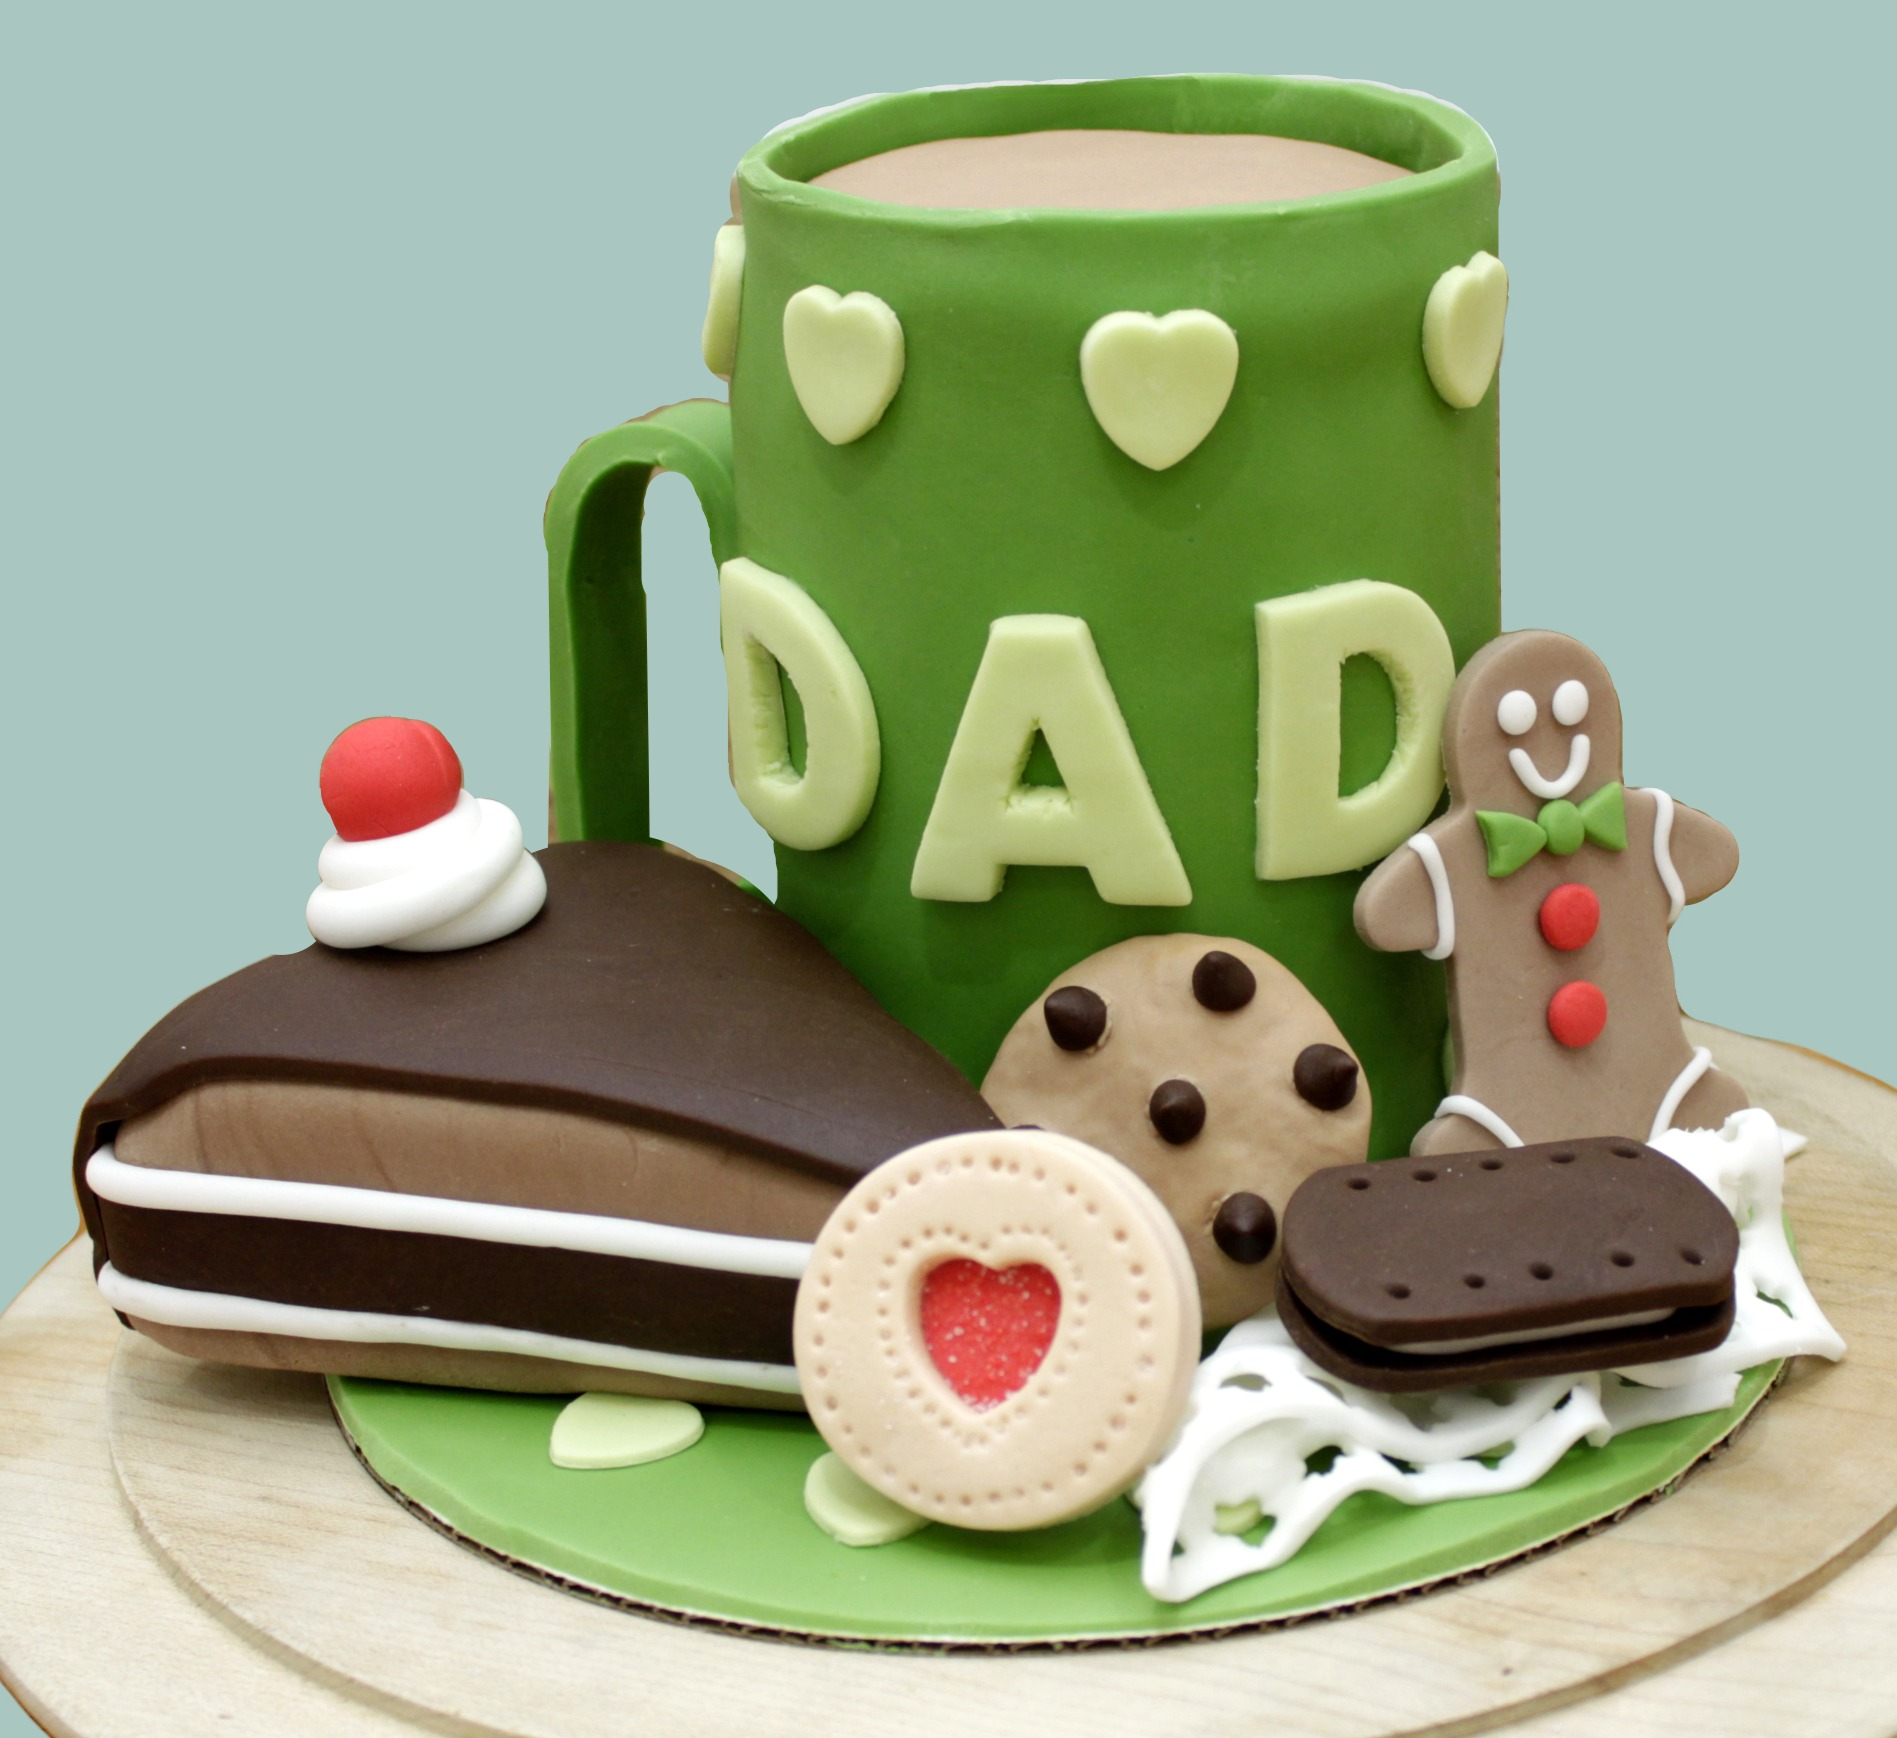 Dad Mug & Treats Cake